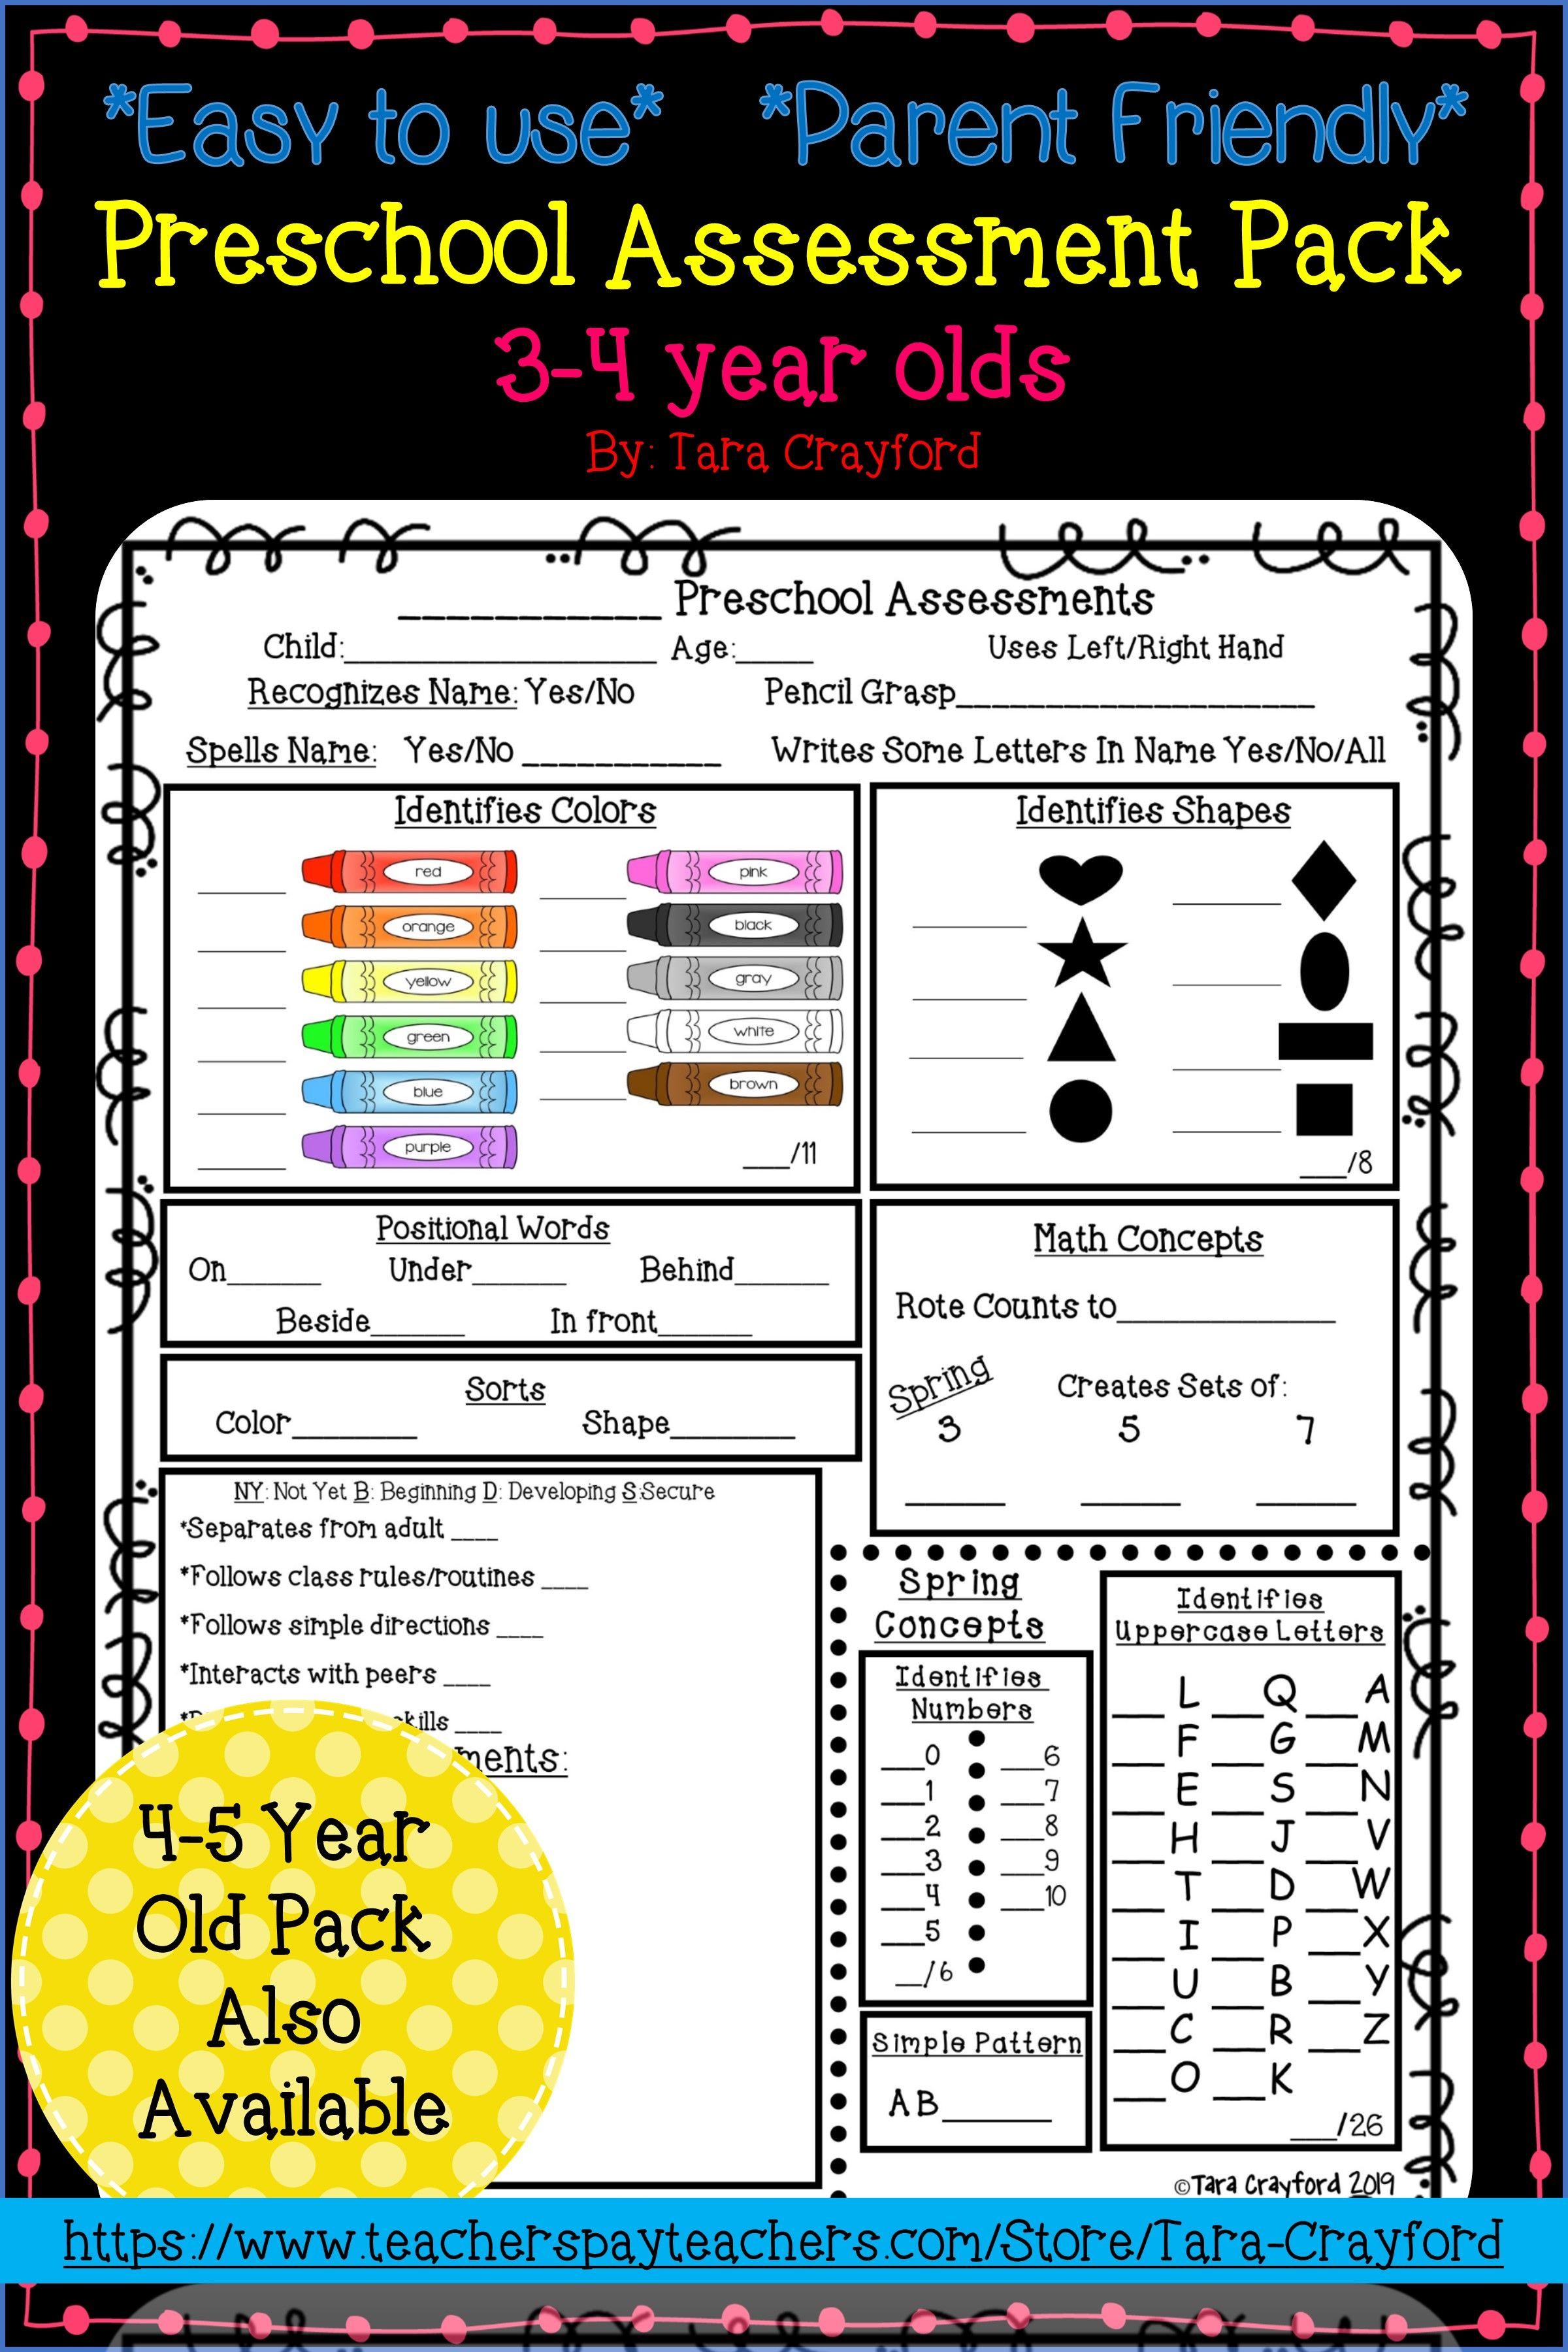 Conference Assessment Pack For Prek 3 And 4 Year Olds